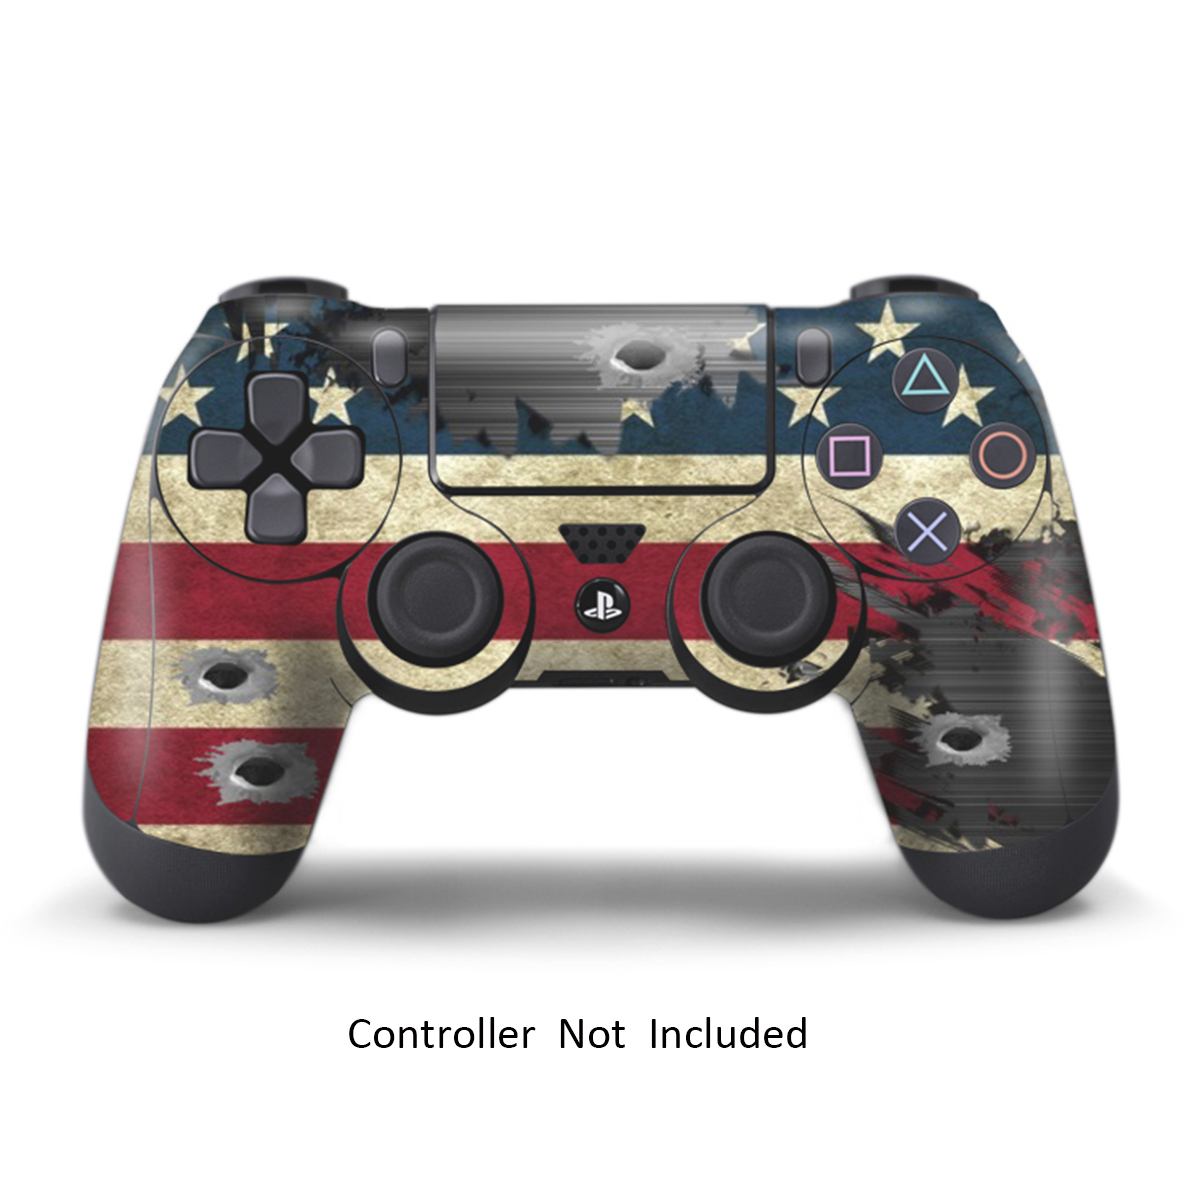 PS4 Skins Playstation 4 Games Sony PS4 Games Decals Custom PS4 Controller Stickers PS4 Remote Controller Skin Playstation 4 Controller Dualshock 4 Vinyl Decal Battle Torn Stripes